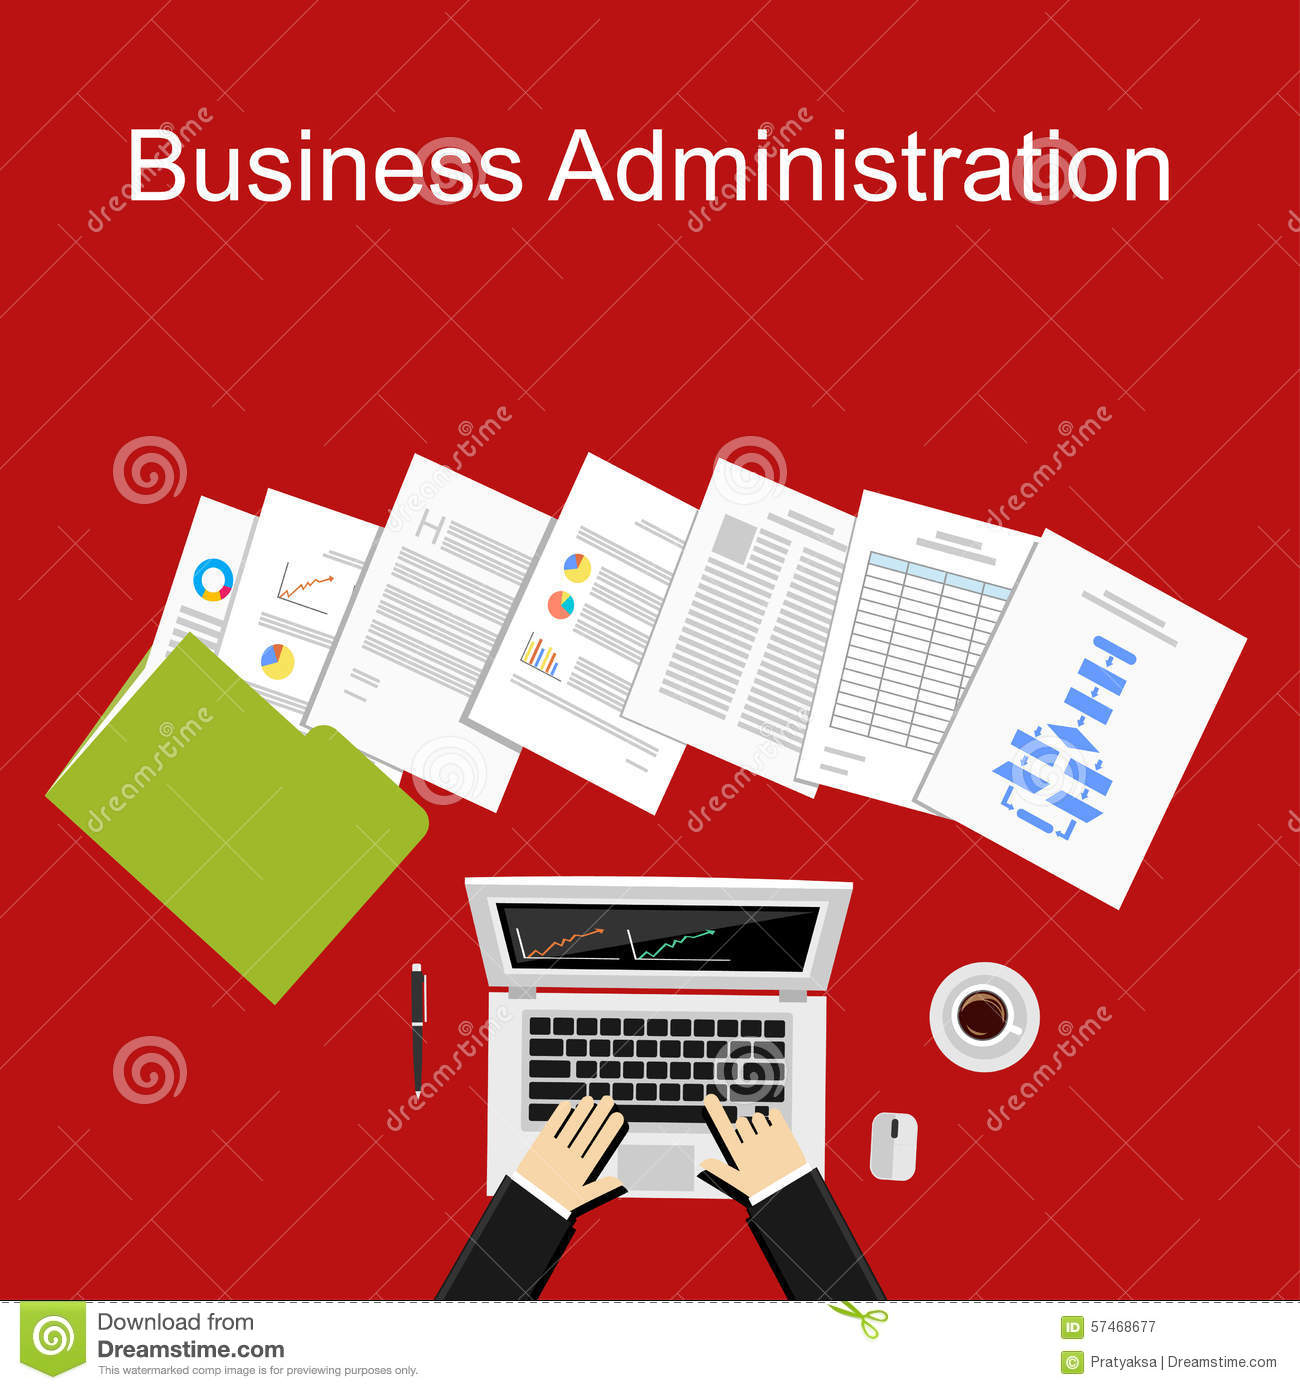 term paper business administration management